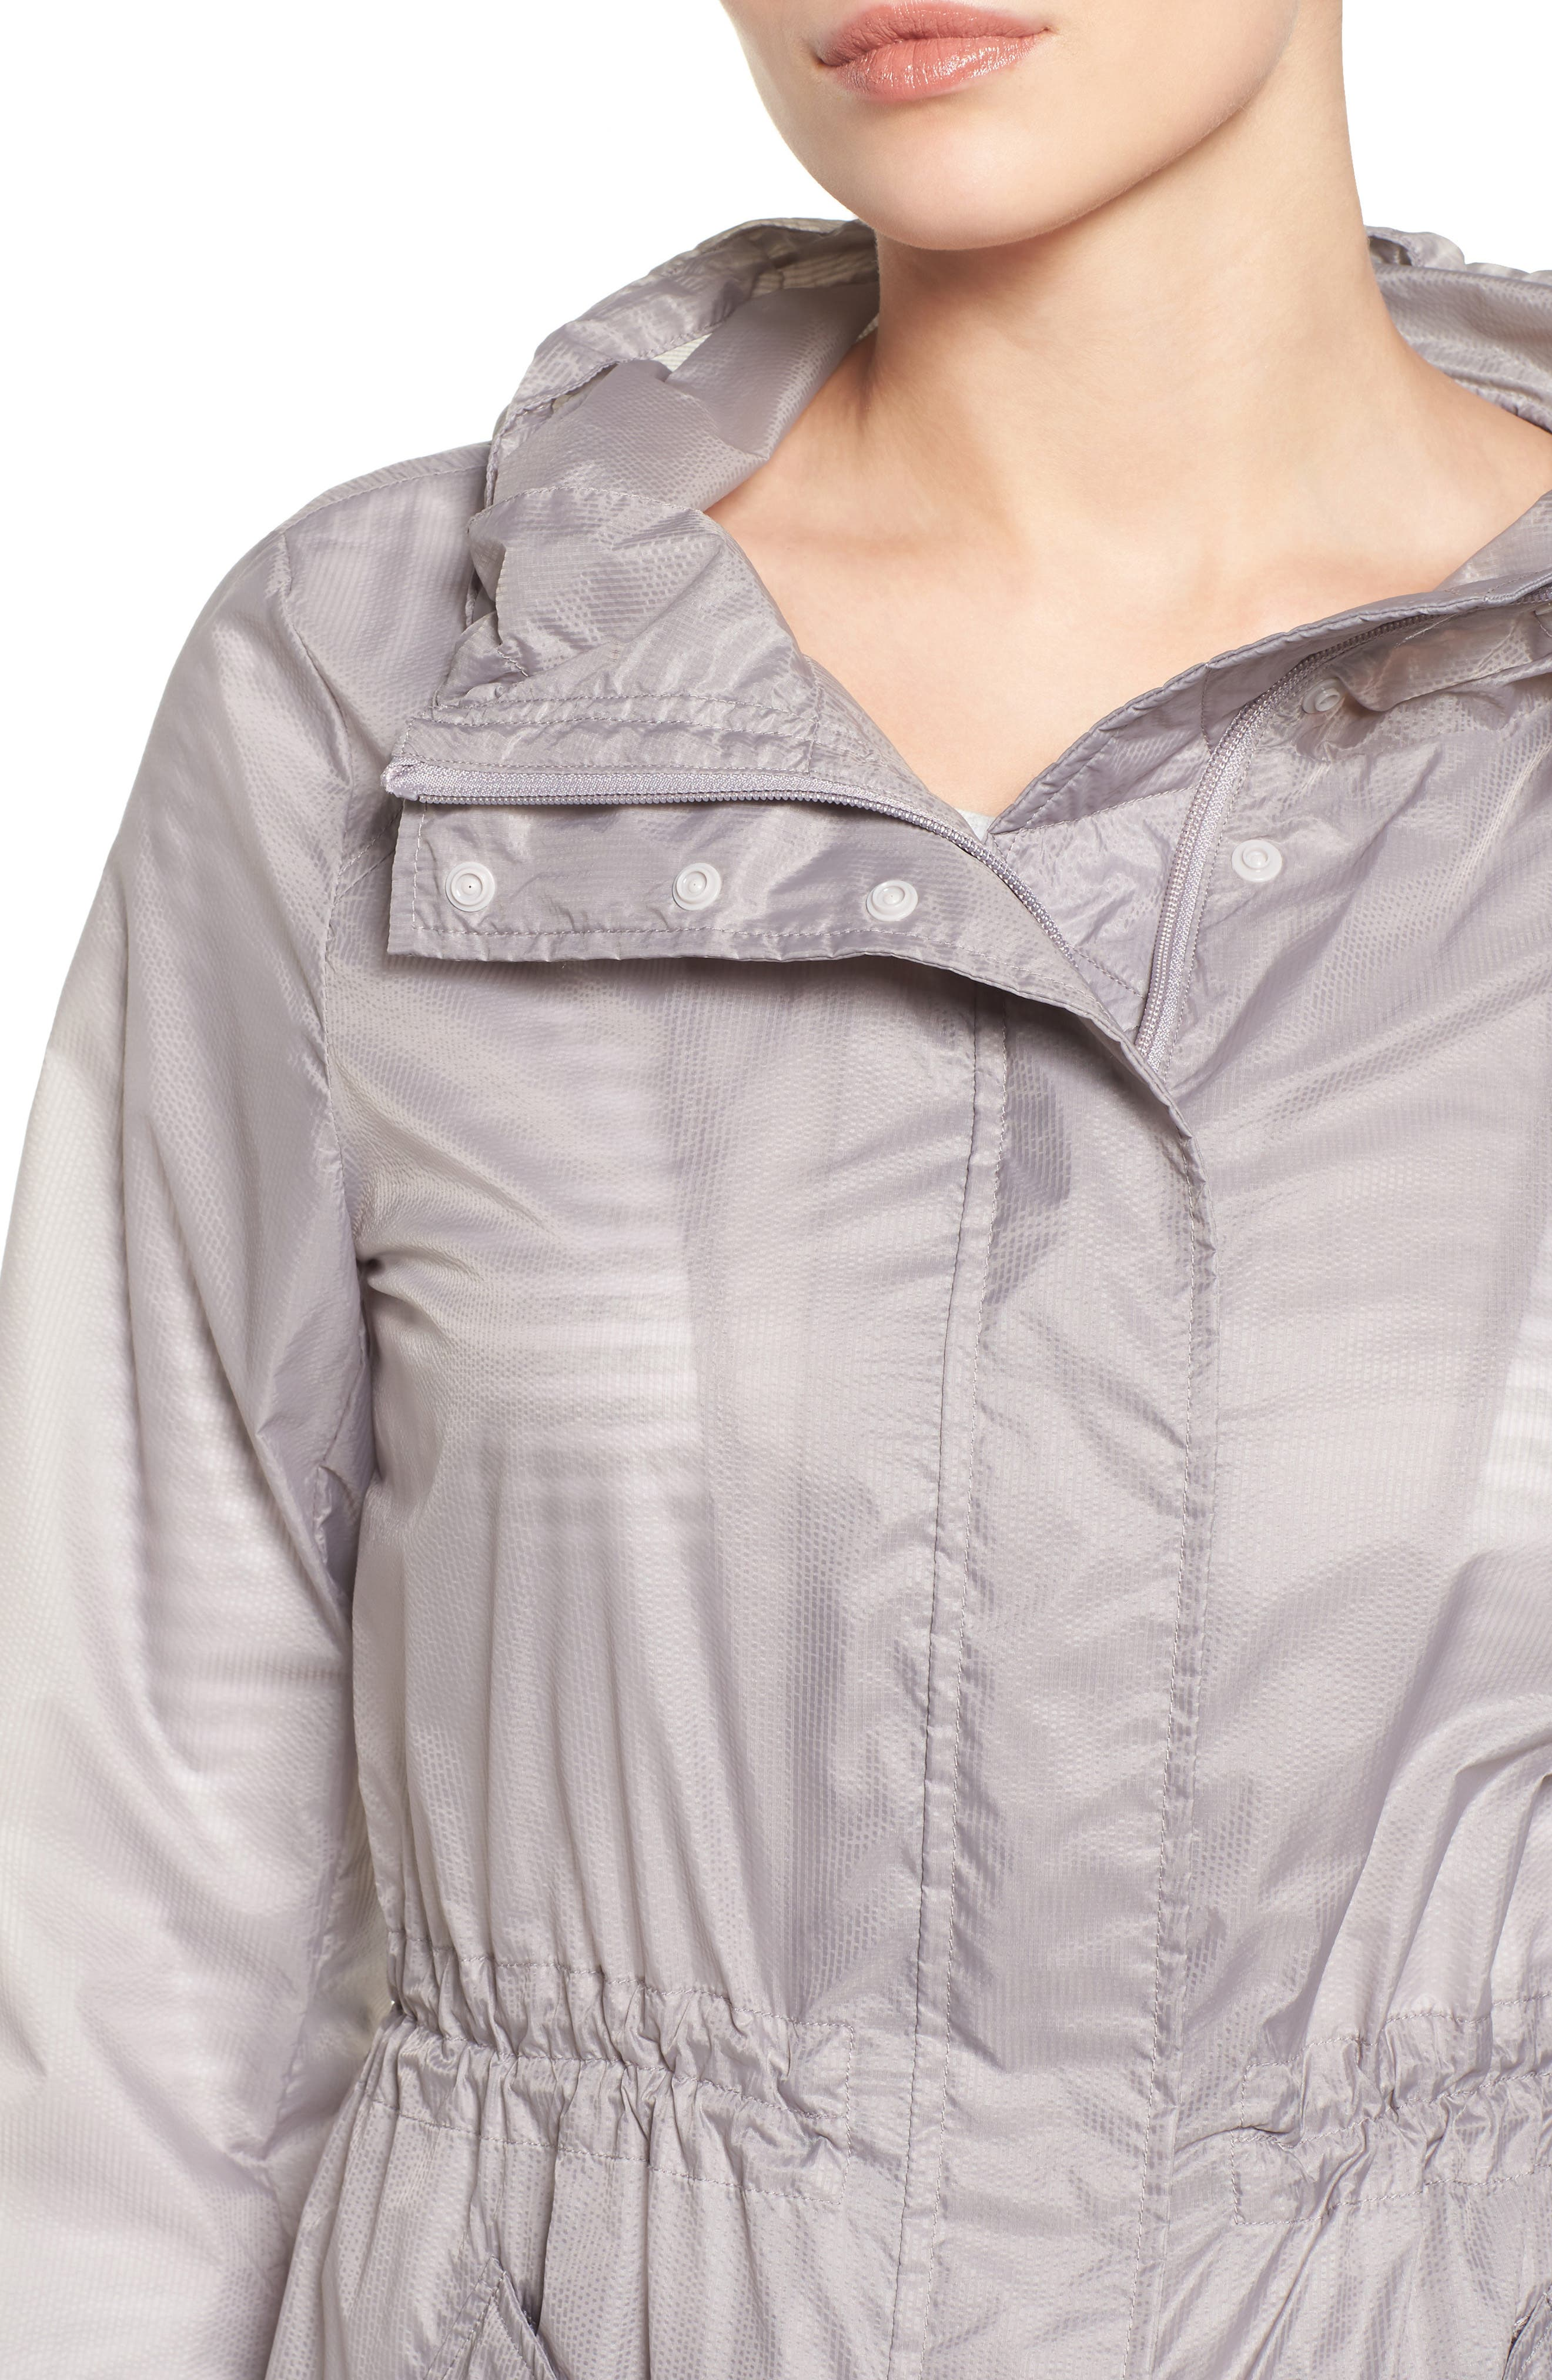 Teri Translucent Rain Jacket,                             Alternate thumbnail 4, color,                             068